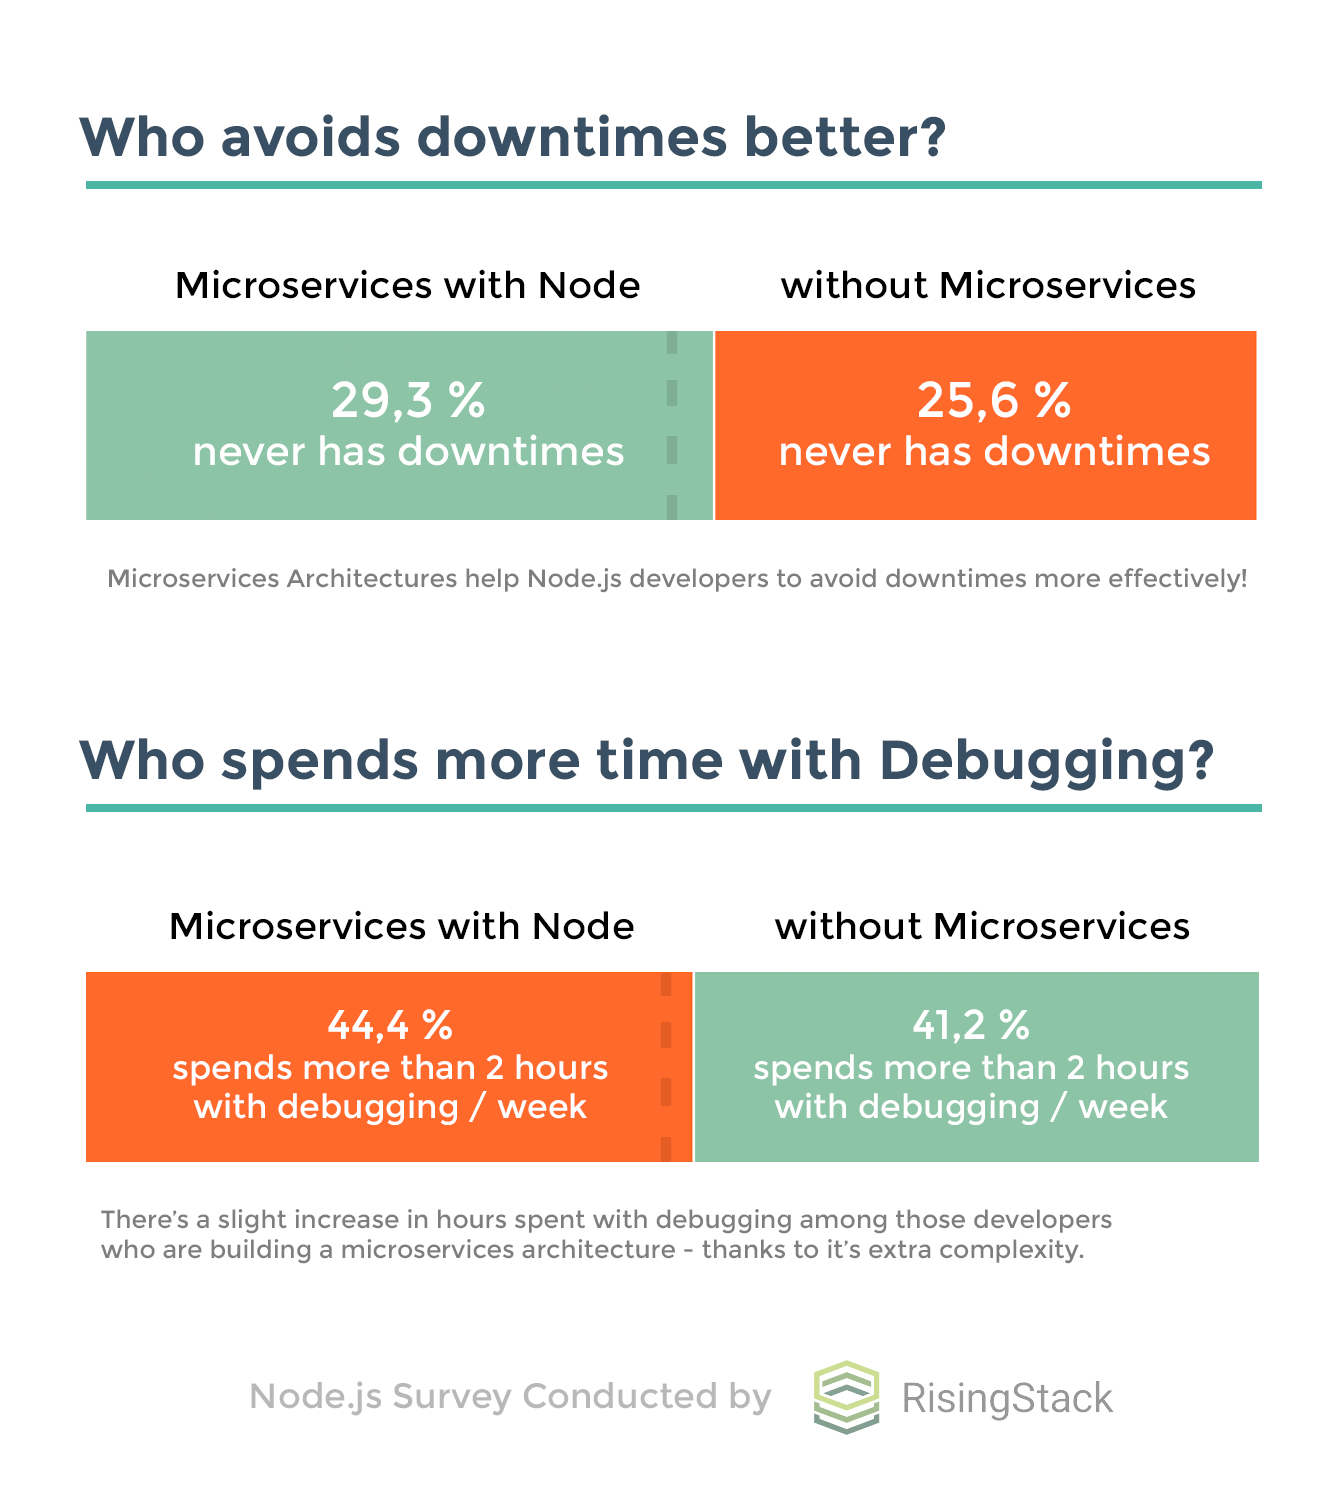 Node.js Survey by RisingStack - Microservices vs no Microservices